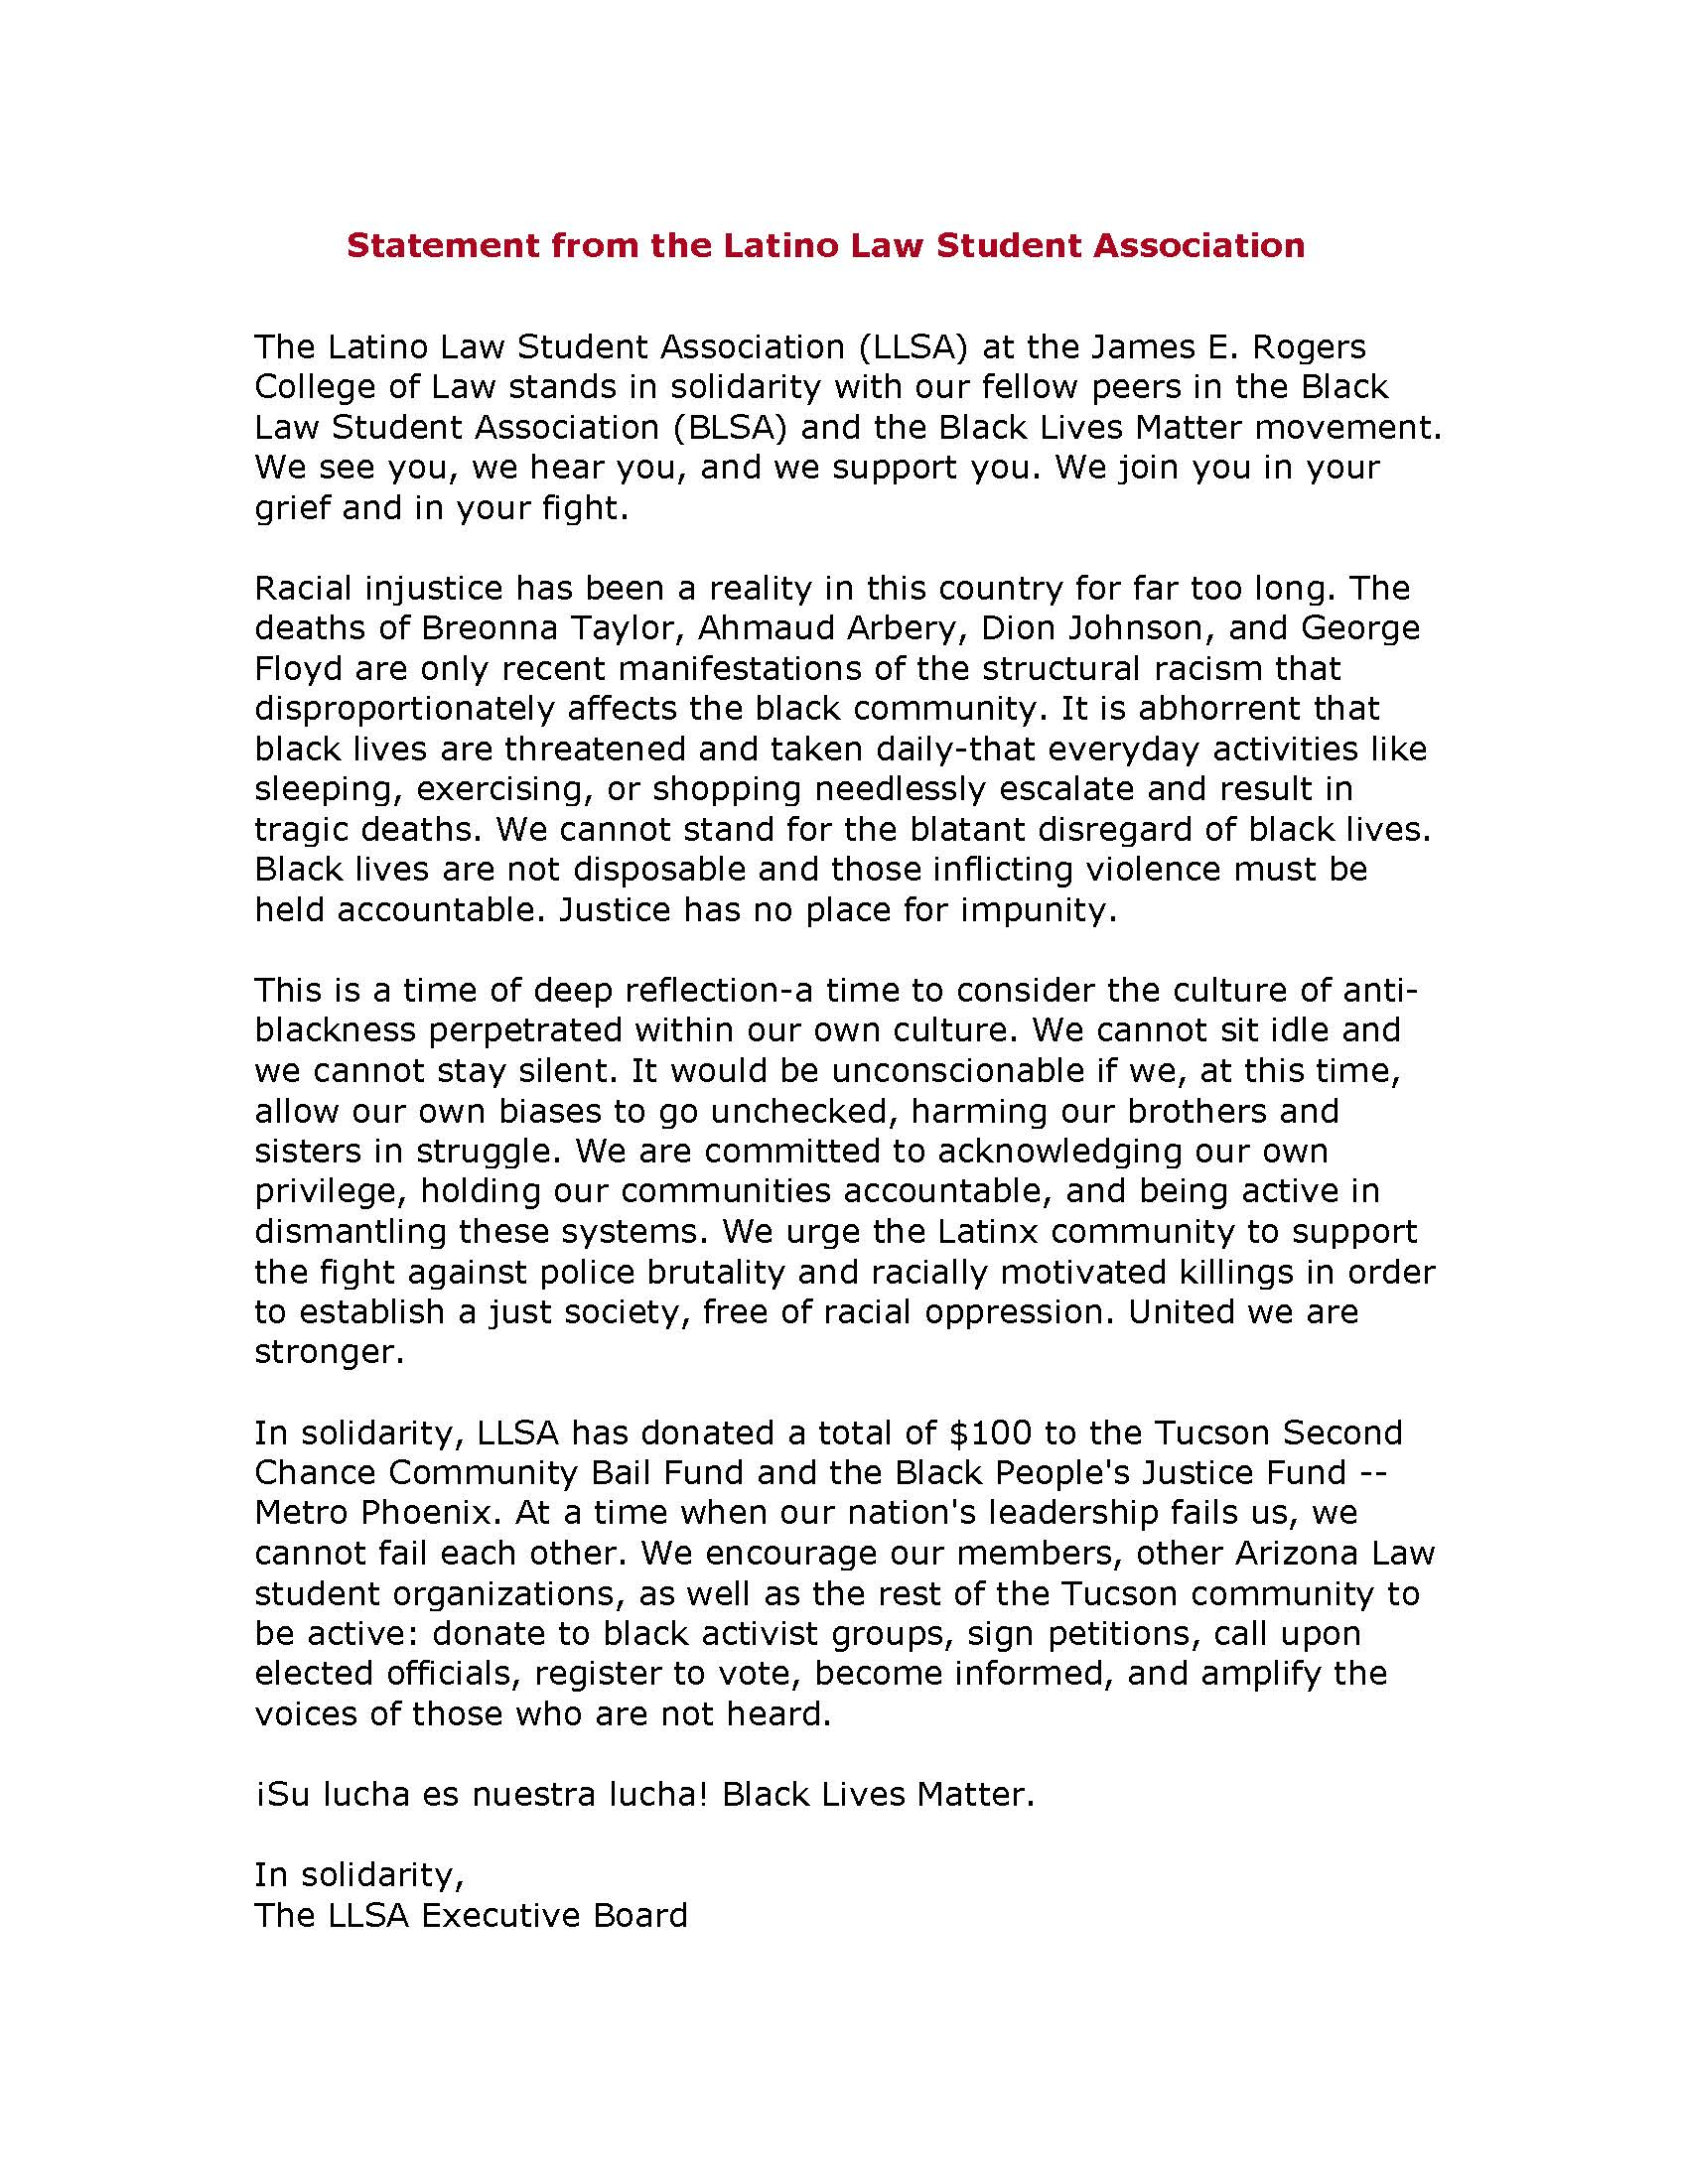 LLSA Statement of Solidarity